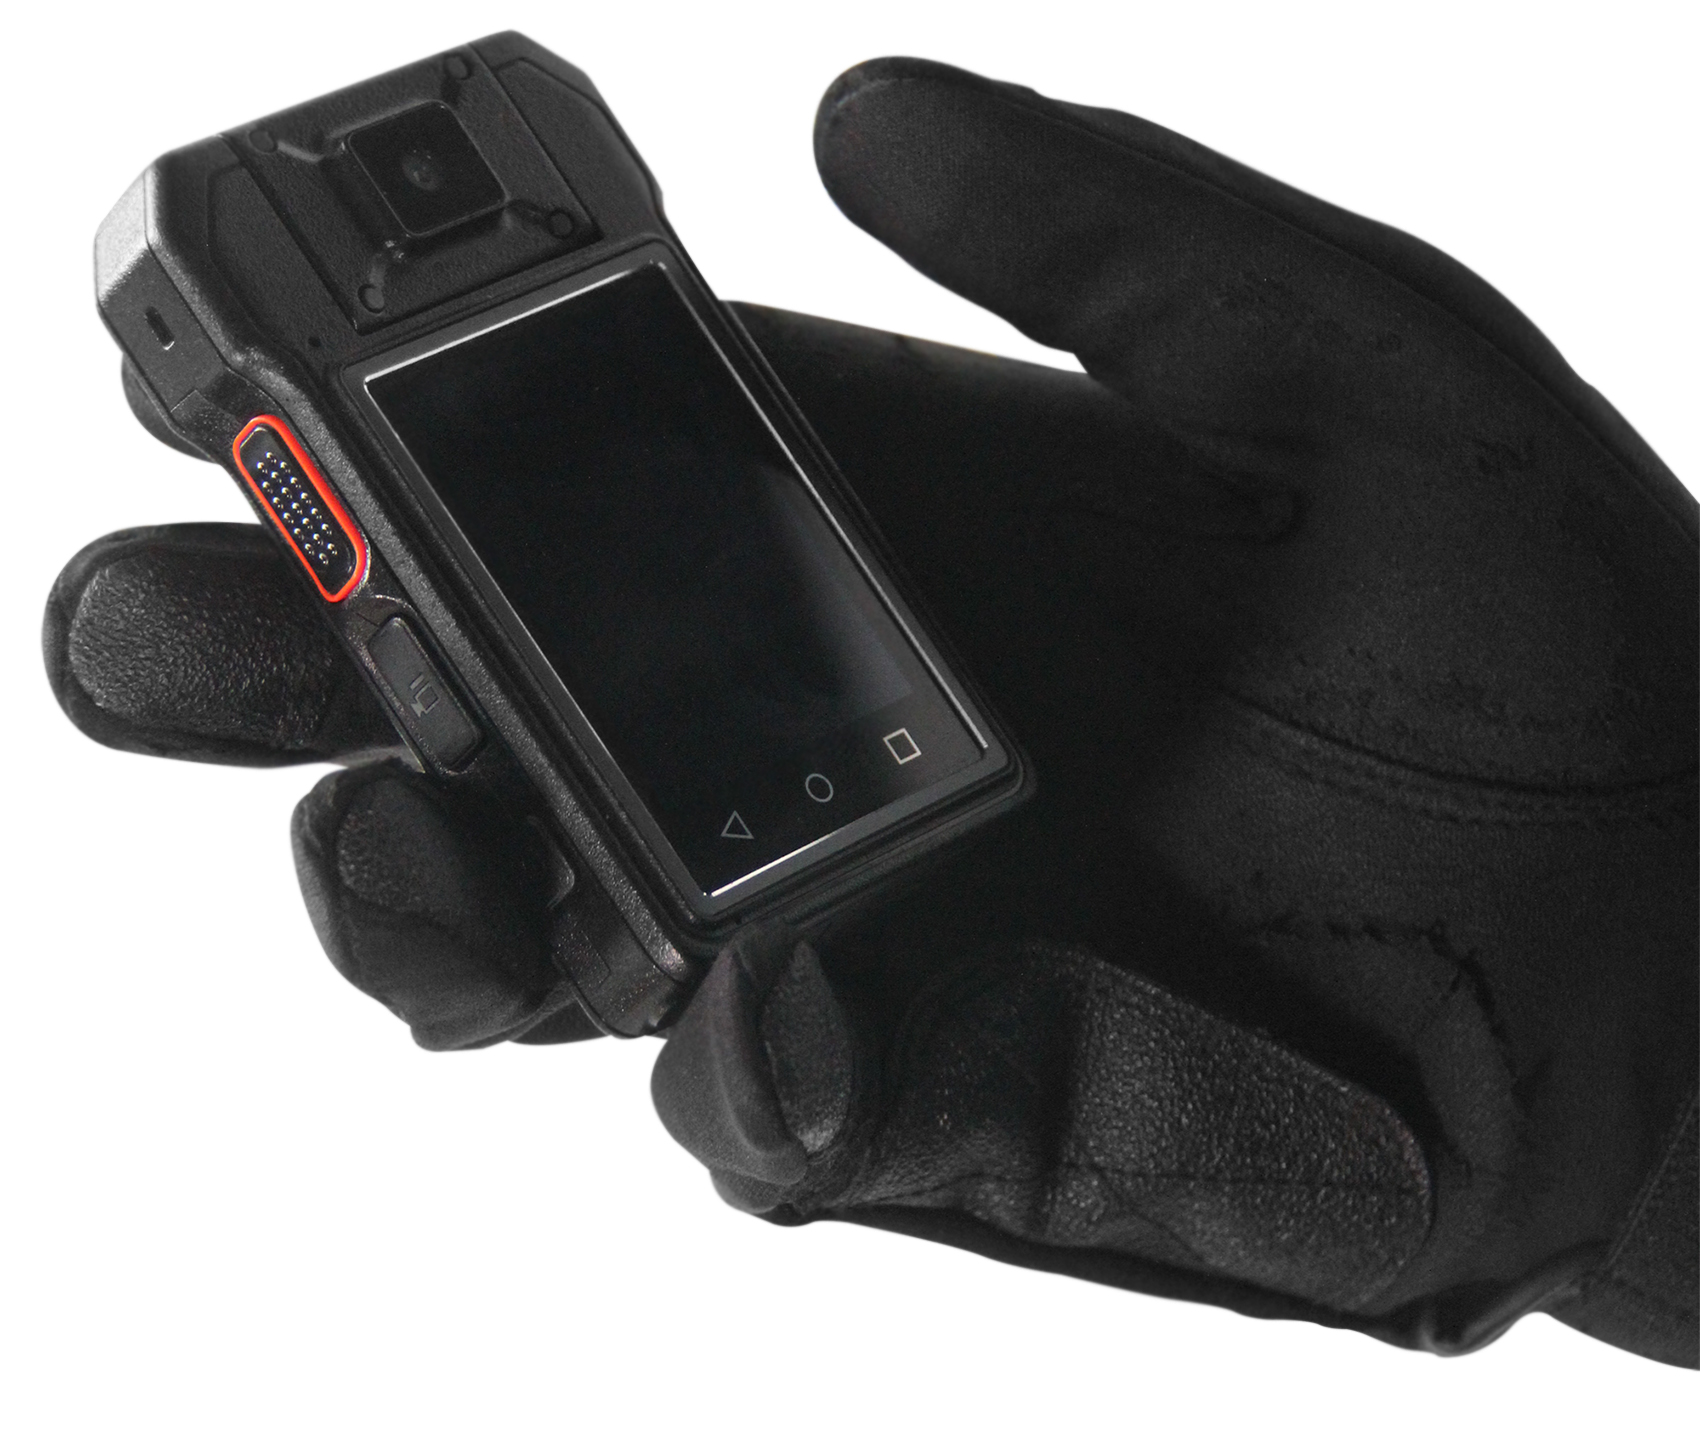 wolfcom x1 police body camera on hand